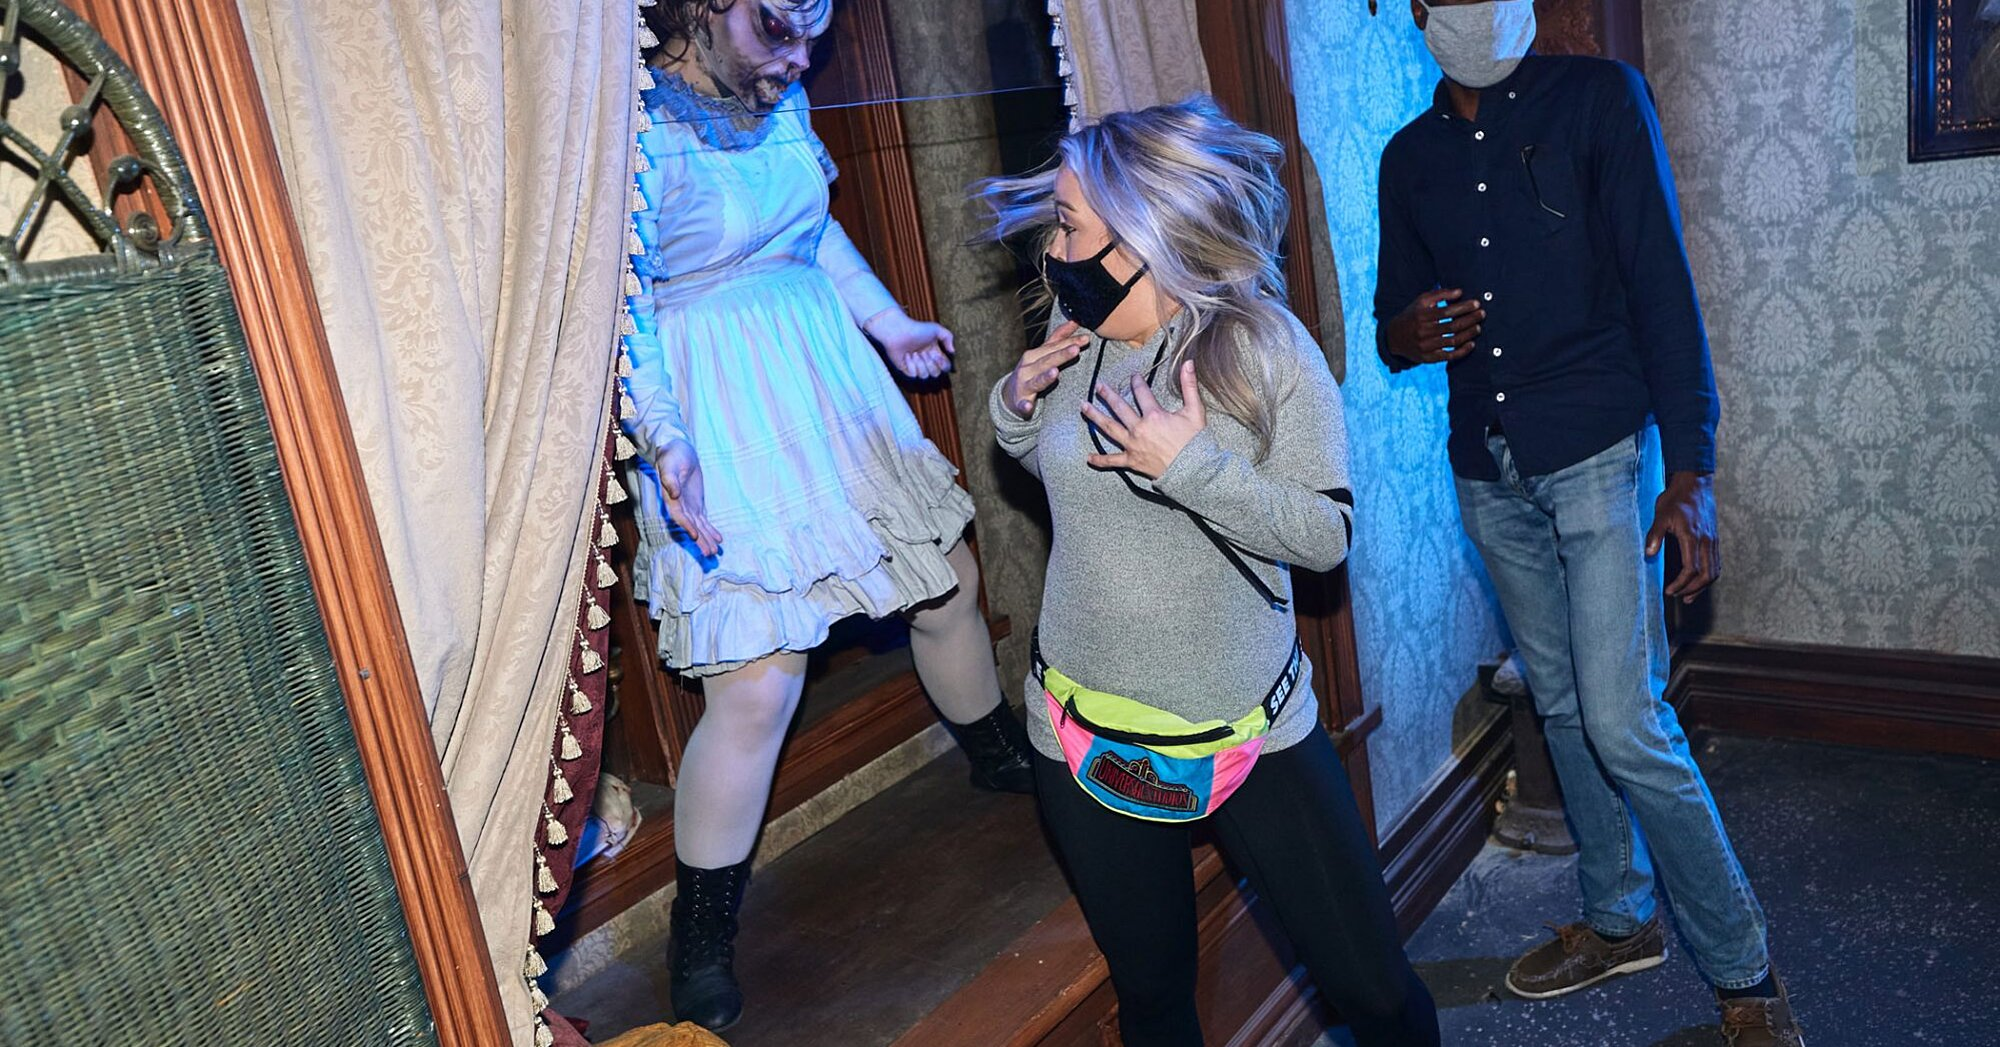 What It's Really Like to Go Through Universal Orlando's New Socially Distanced Haunted Houses